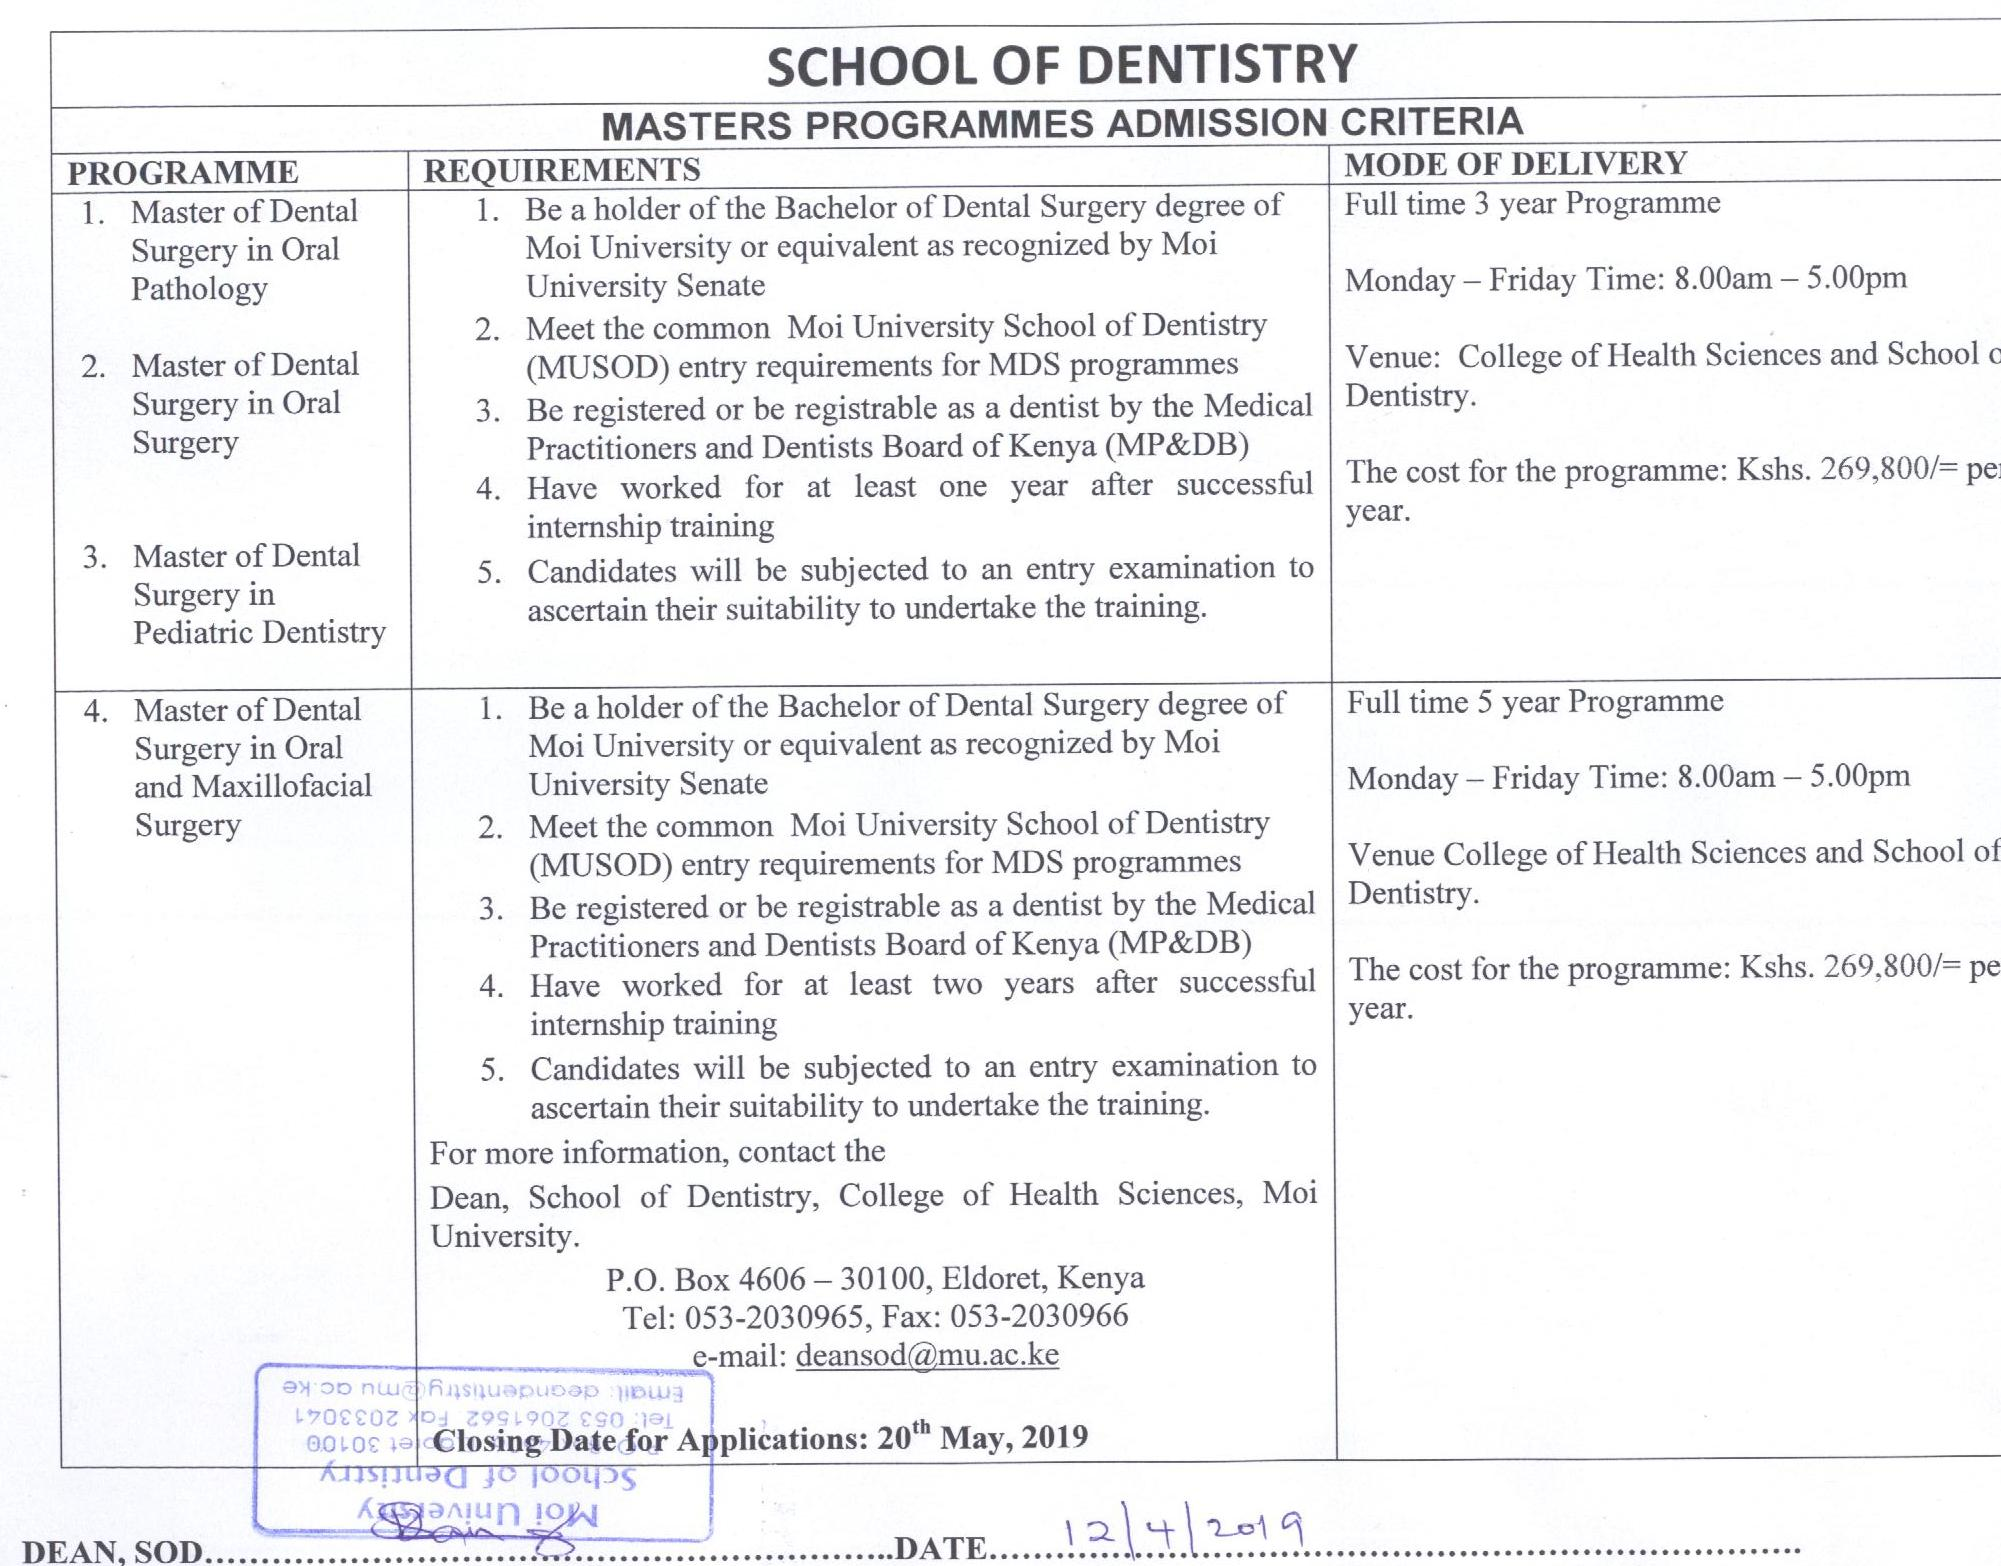 Apply now: Masters Programmes, School of Dentistry